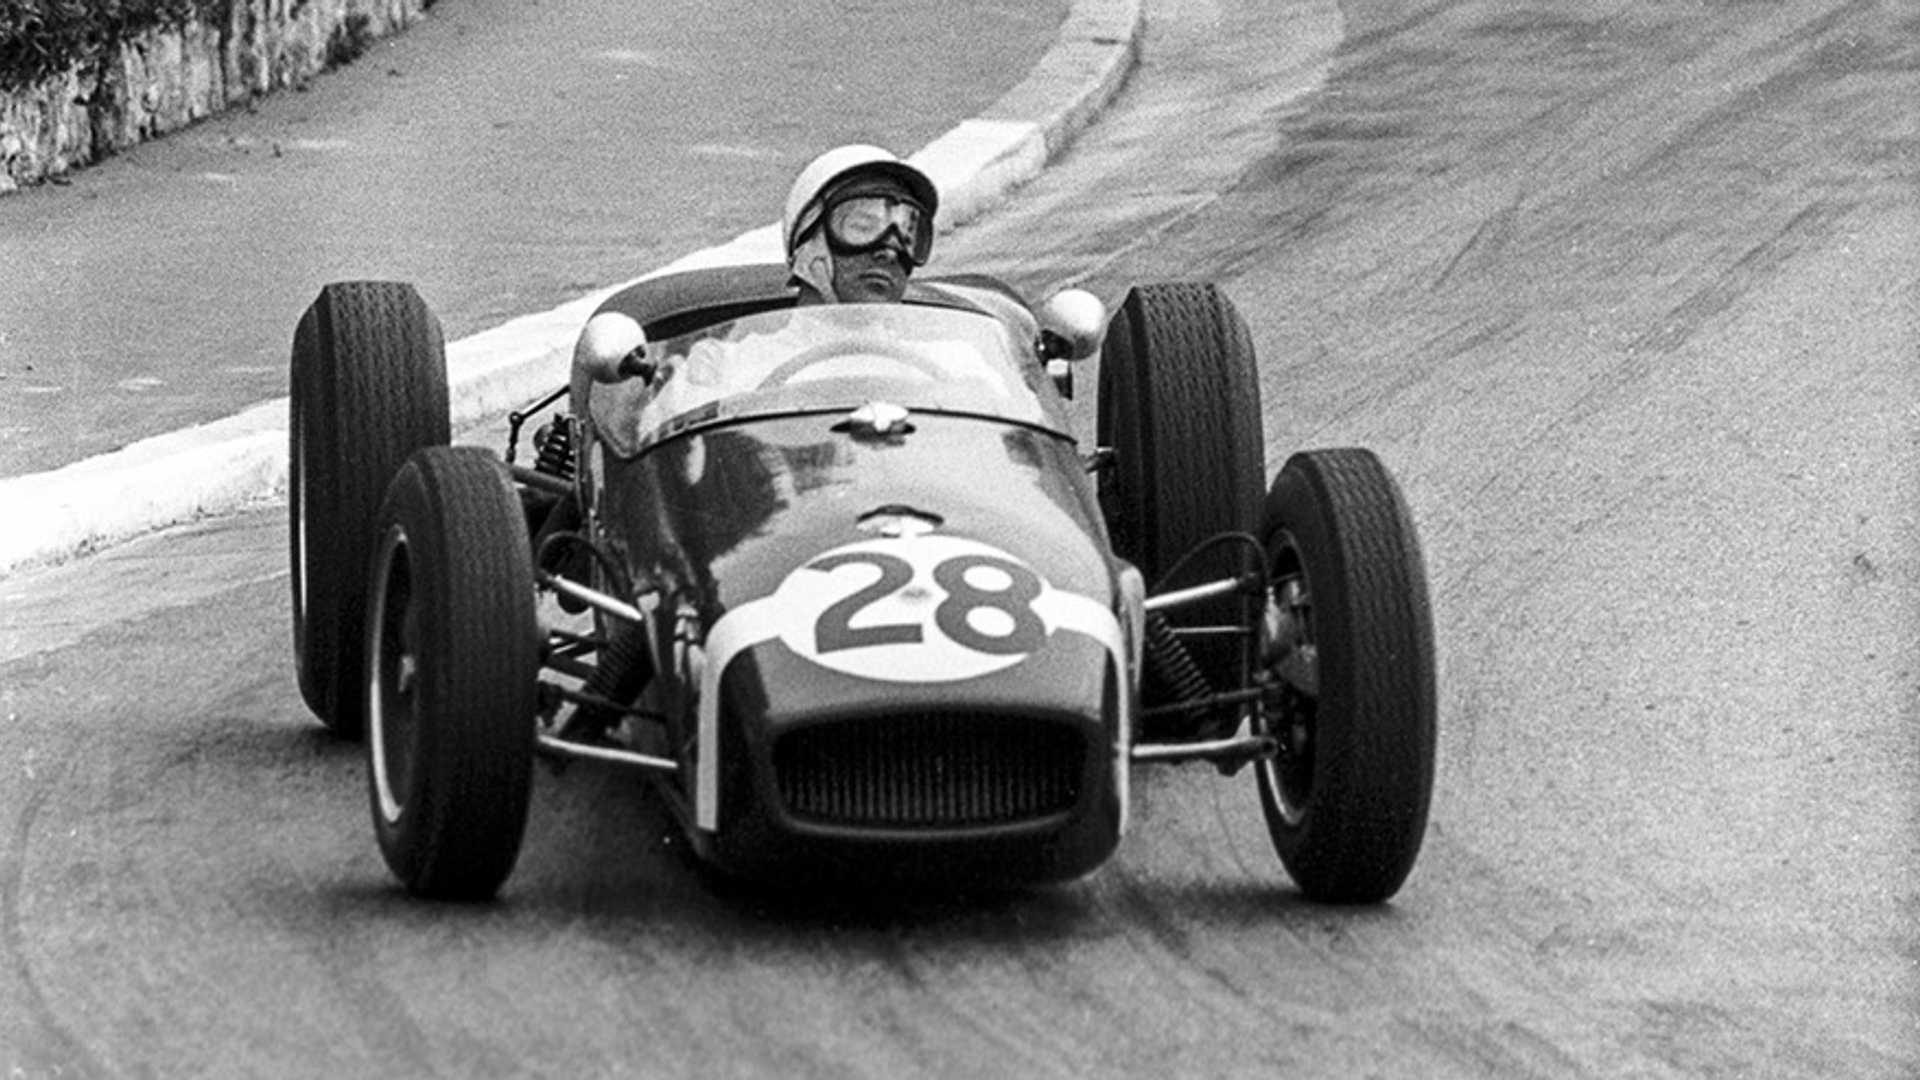 Lotus remembers its first Grand Prix win, 50 years on